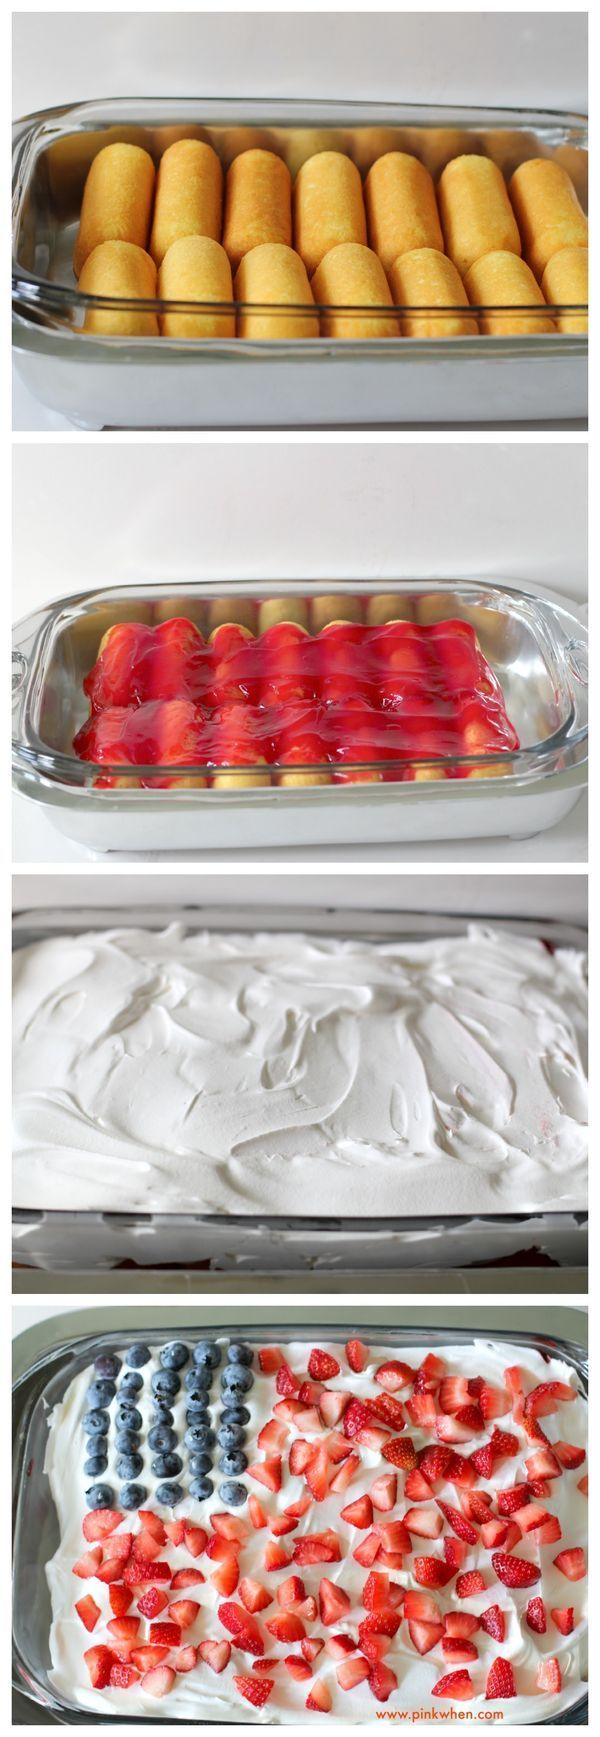 NO BAKE Strawberry-Blueberry Patriotic Cloud Cake with only 4 Ingredients - LESS THAN 10 Minutes. Perfect Memorial Day Dessert.